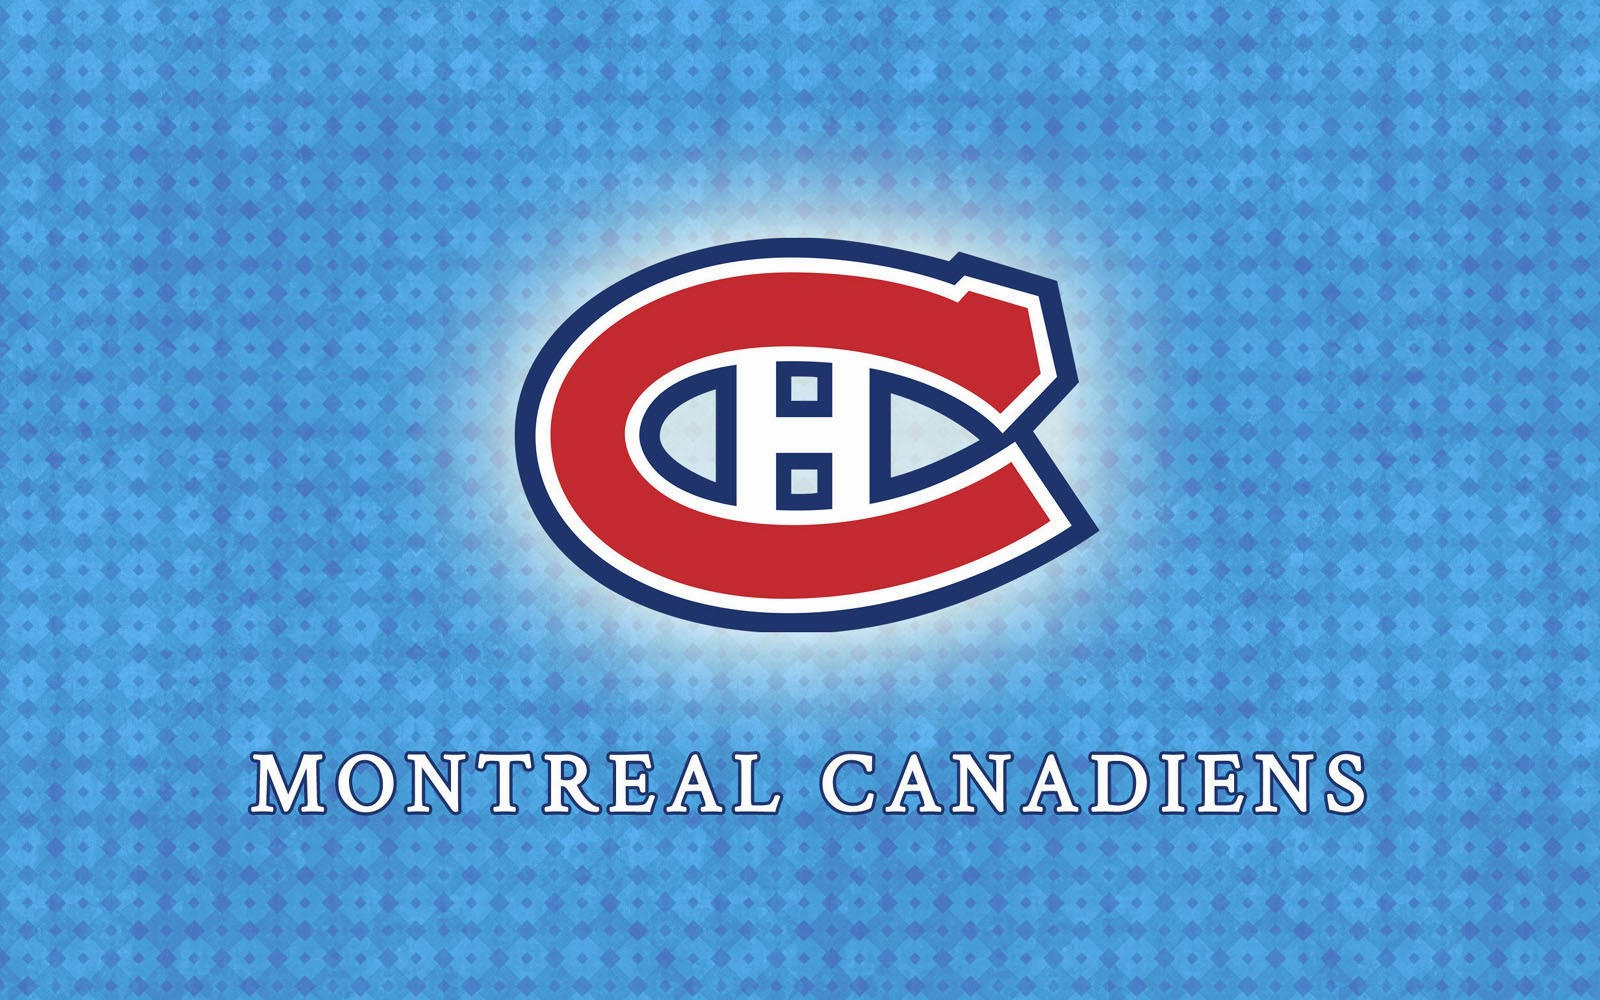 1600x1000 - Montreal Canadiens Wallpapers 27